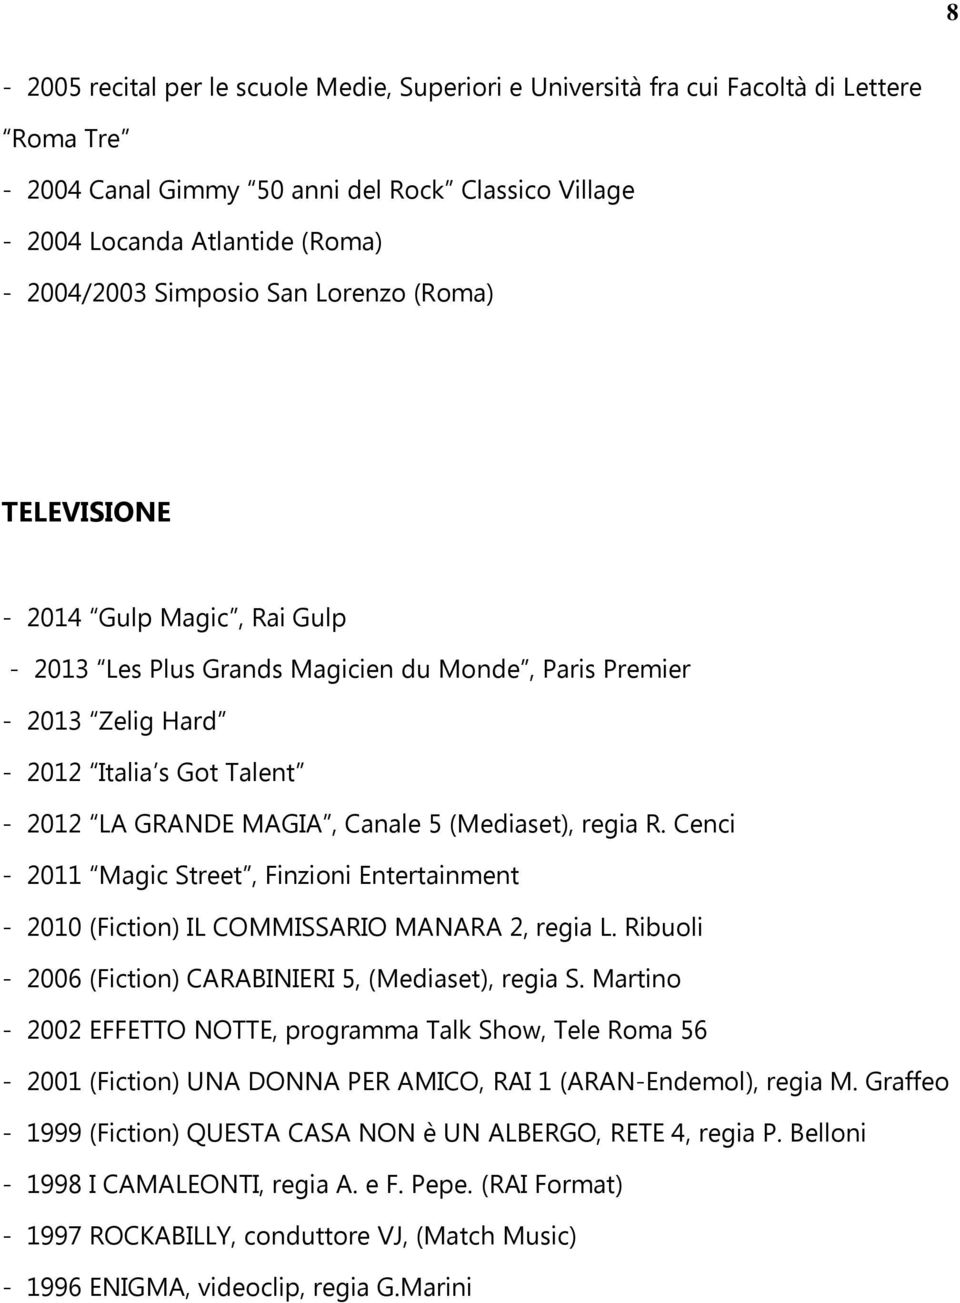 5 (Mediaset), regia R. Cenci - 2011 Magic Street, Finzioni Entertainment - 2010 (Fiction) IL COMMISSARIO MANARA 2, regia L. Ribuoli - 2006 (Fiction) CARABINIERI 5, (Mediaset), regia S.